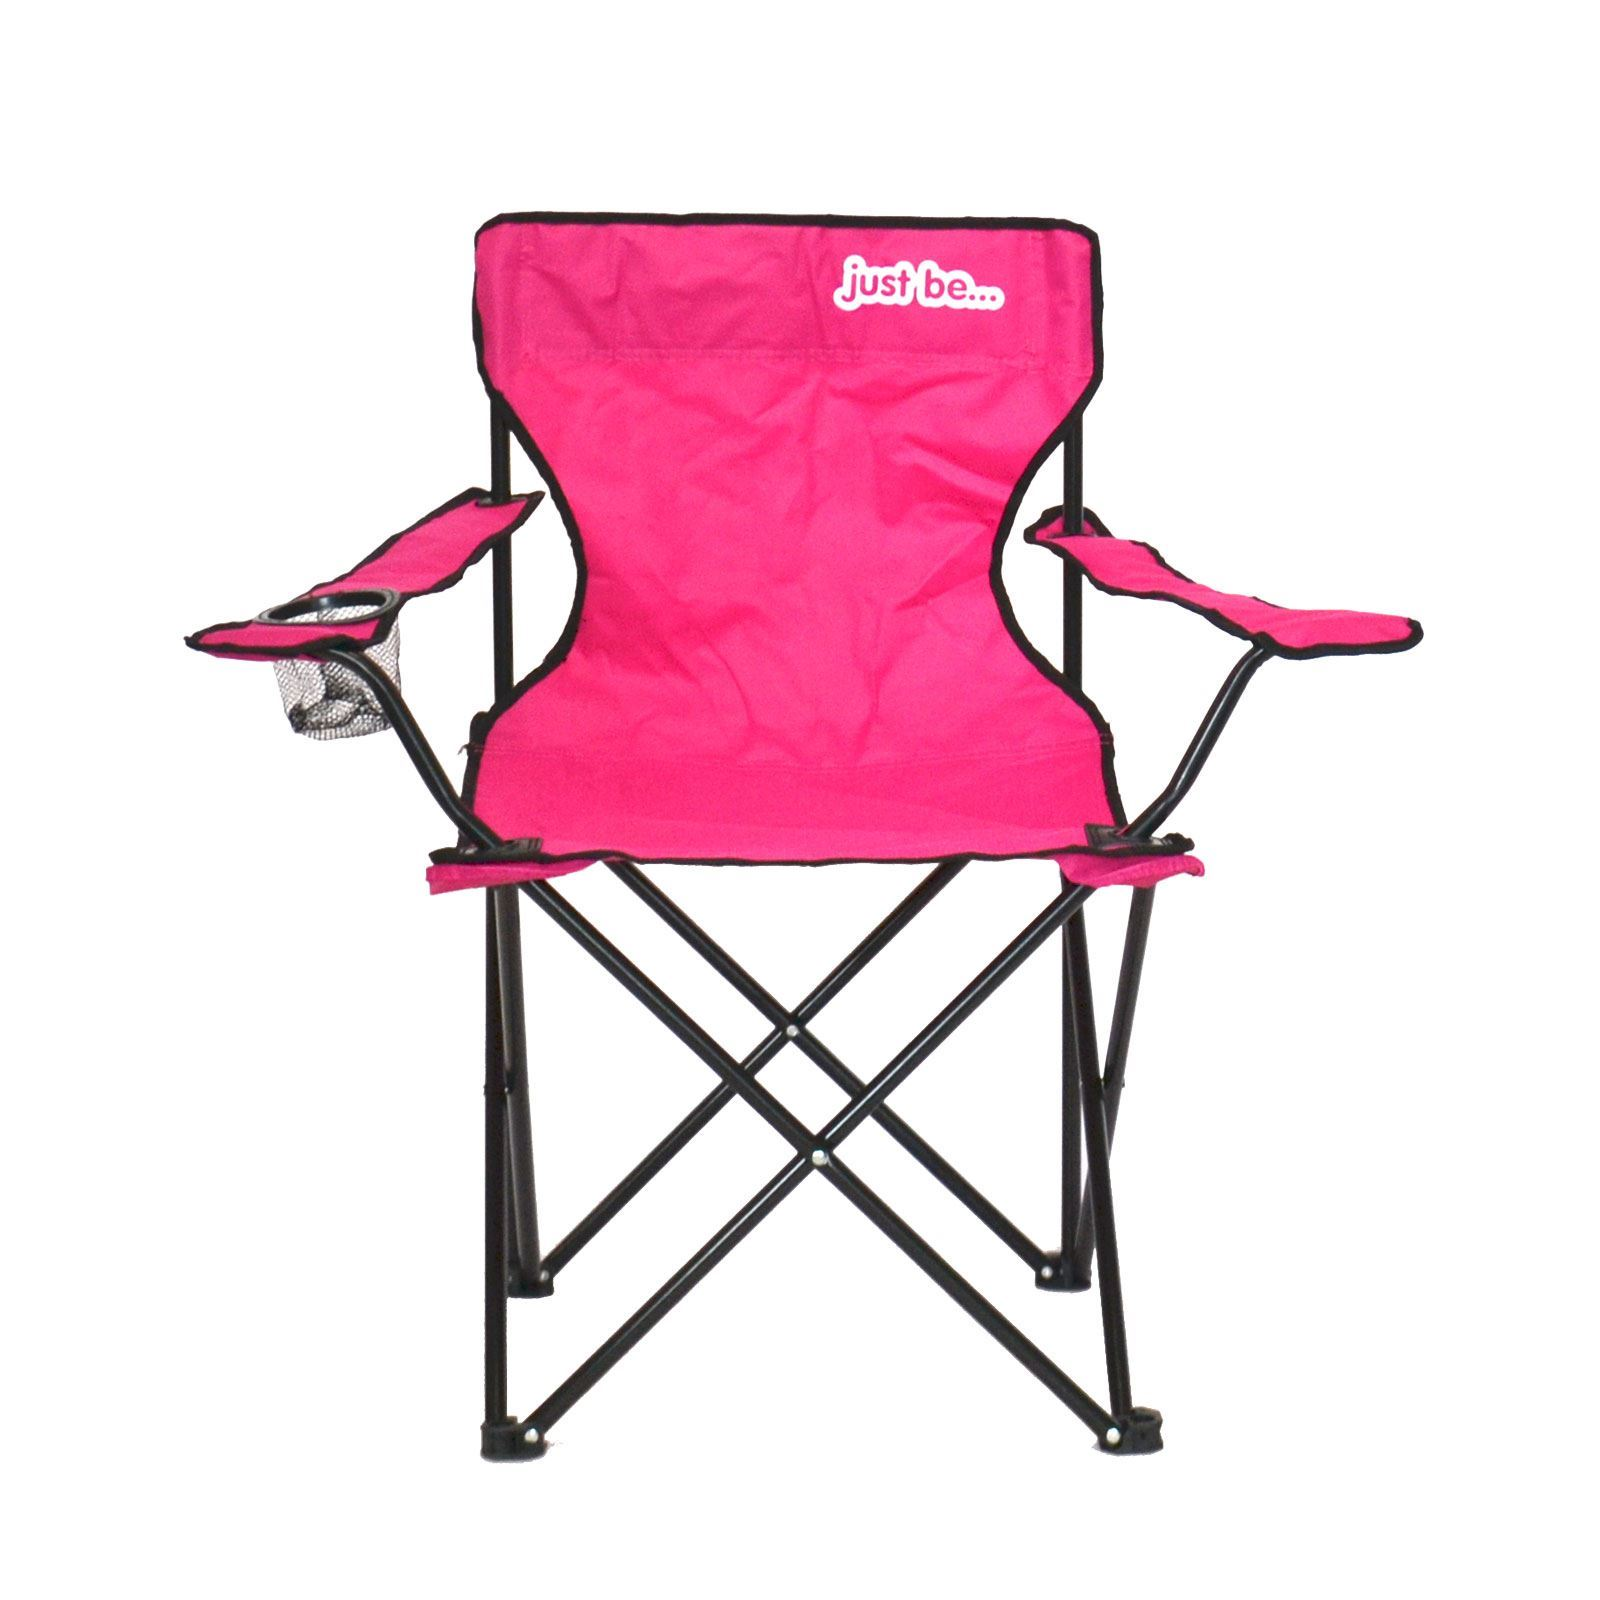 pink folding camping chair outdoor high chairs babies returned stock with black trim ebay